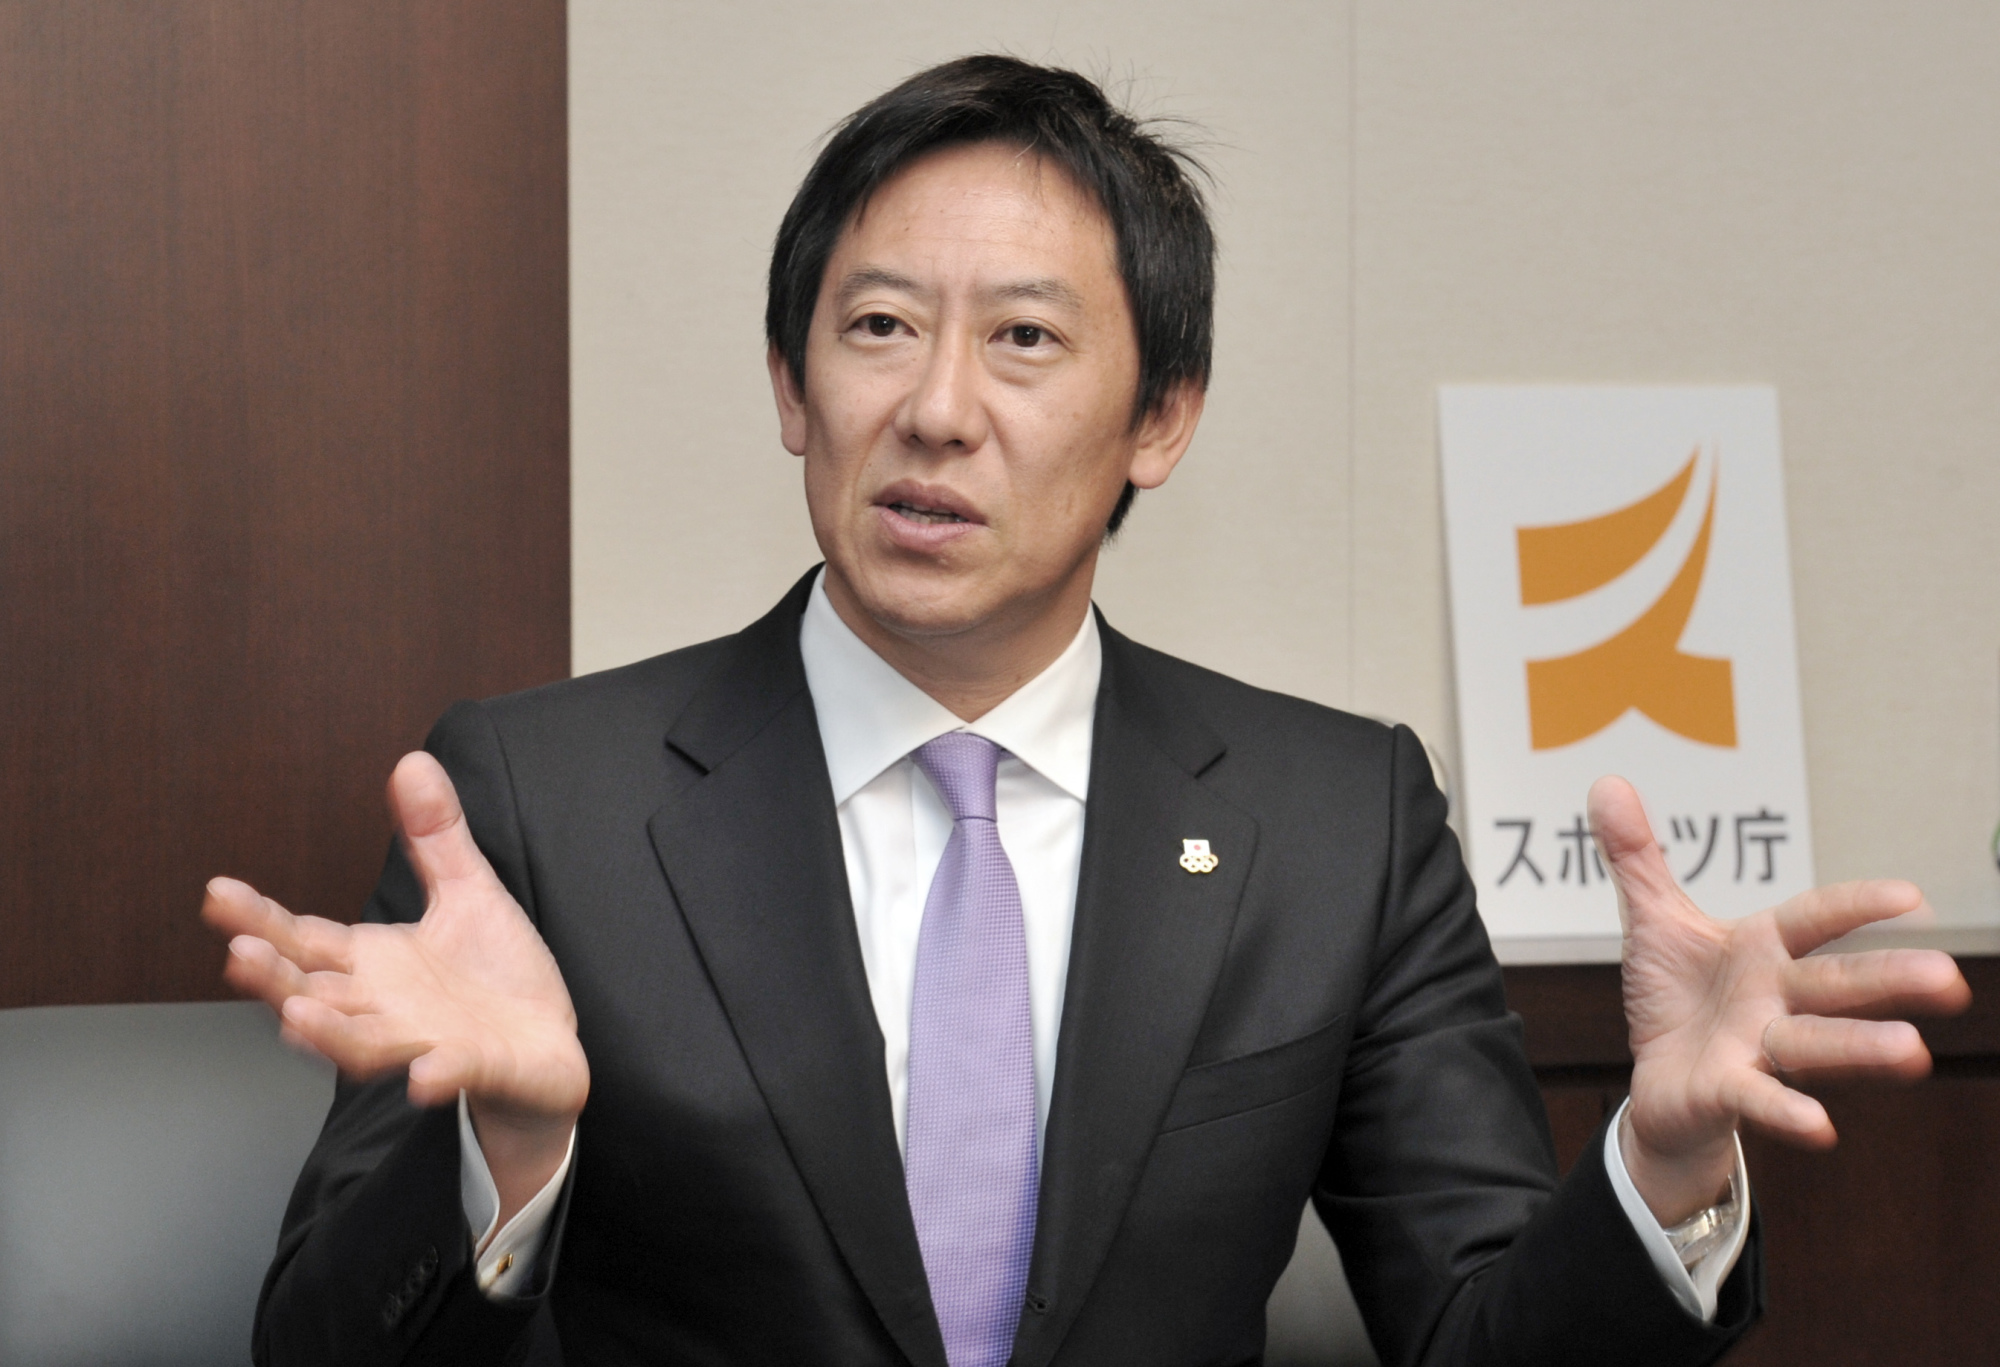 Sports Agency Japan Commissioner Daichi Suzuki is hoping to uncover a 'treasure trove' of new athletes before the 2020 Olympics. | YOSHIAKI MIURA